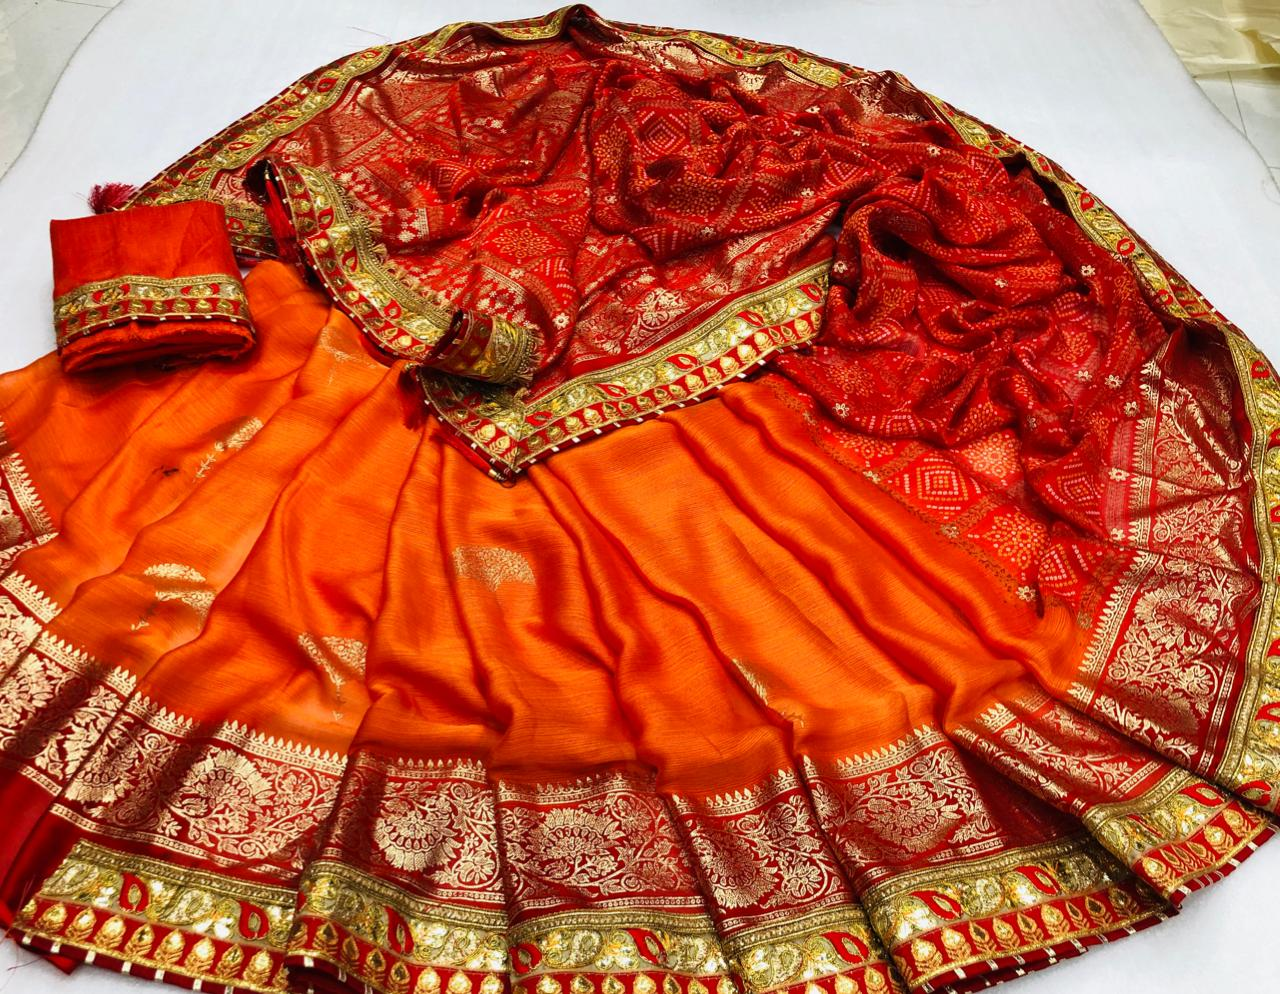 Pretty Orange Color Designer Fancy Chiffon Bandhej Gotta Patti Work Saree Blouse For Function Wear